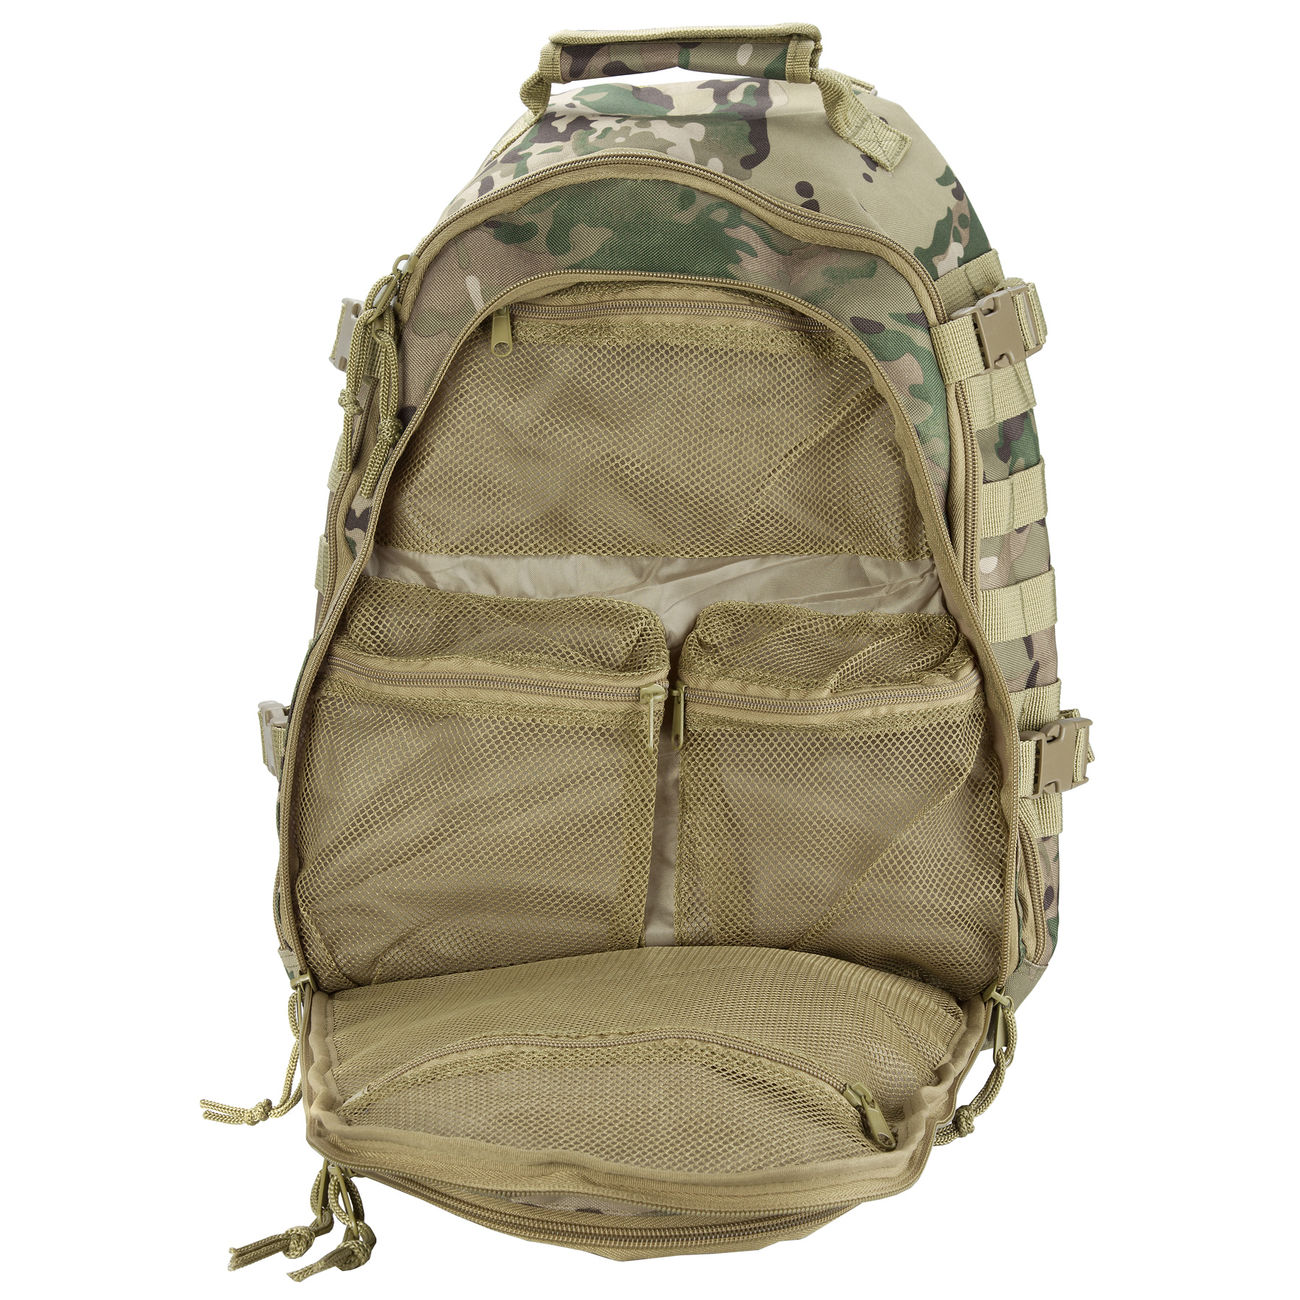 101 INC. Rucksack Mission Pack DTC multi 3